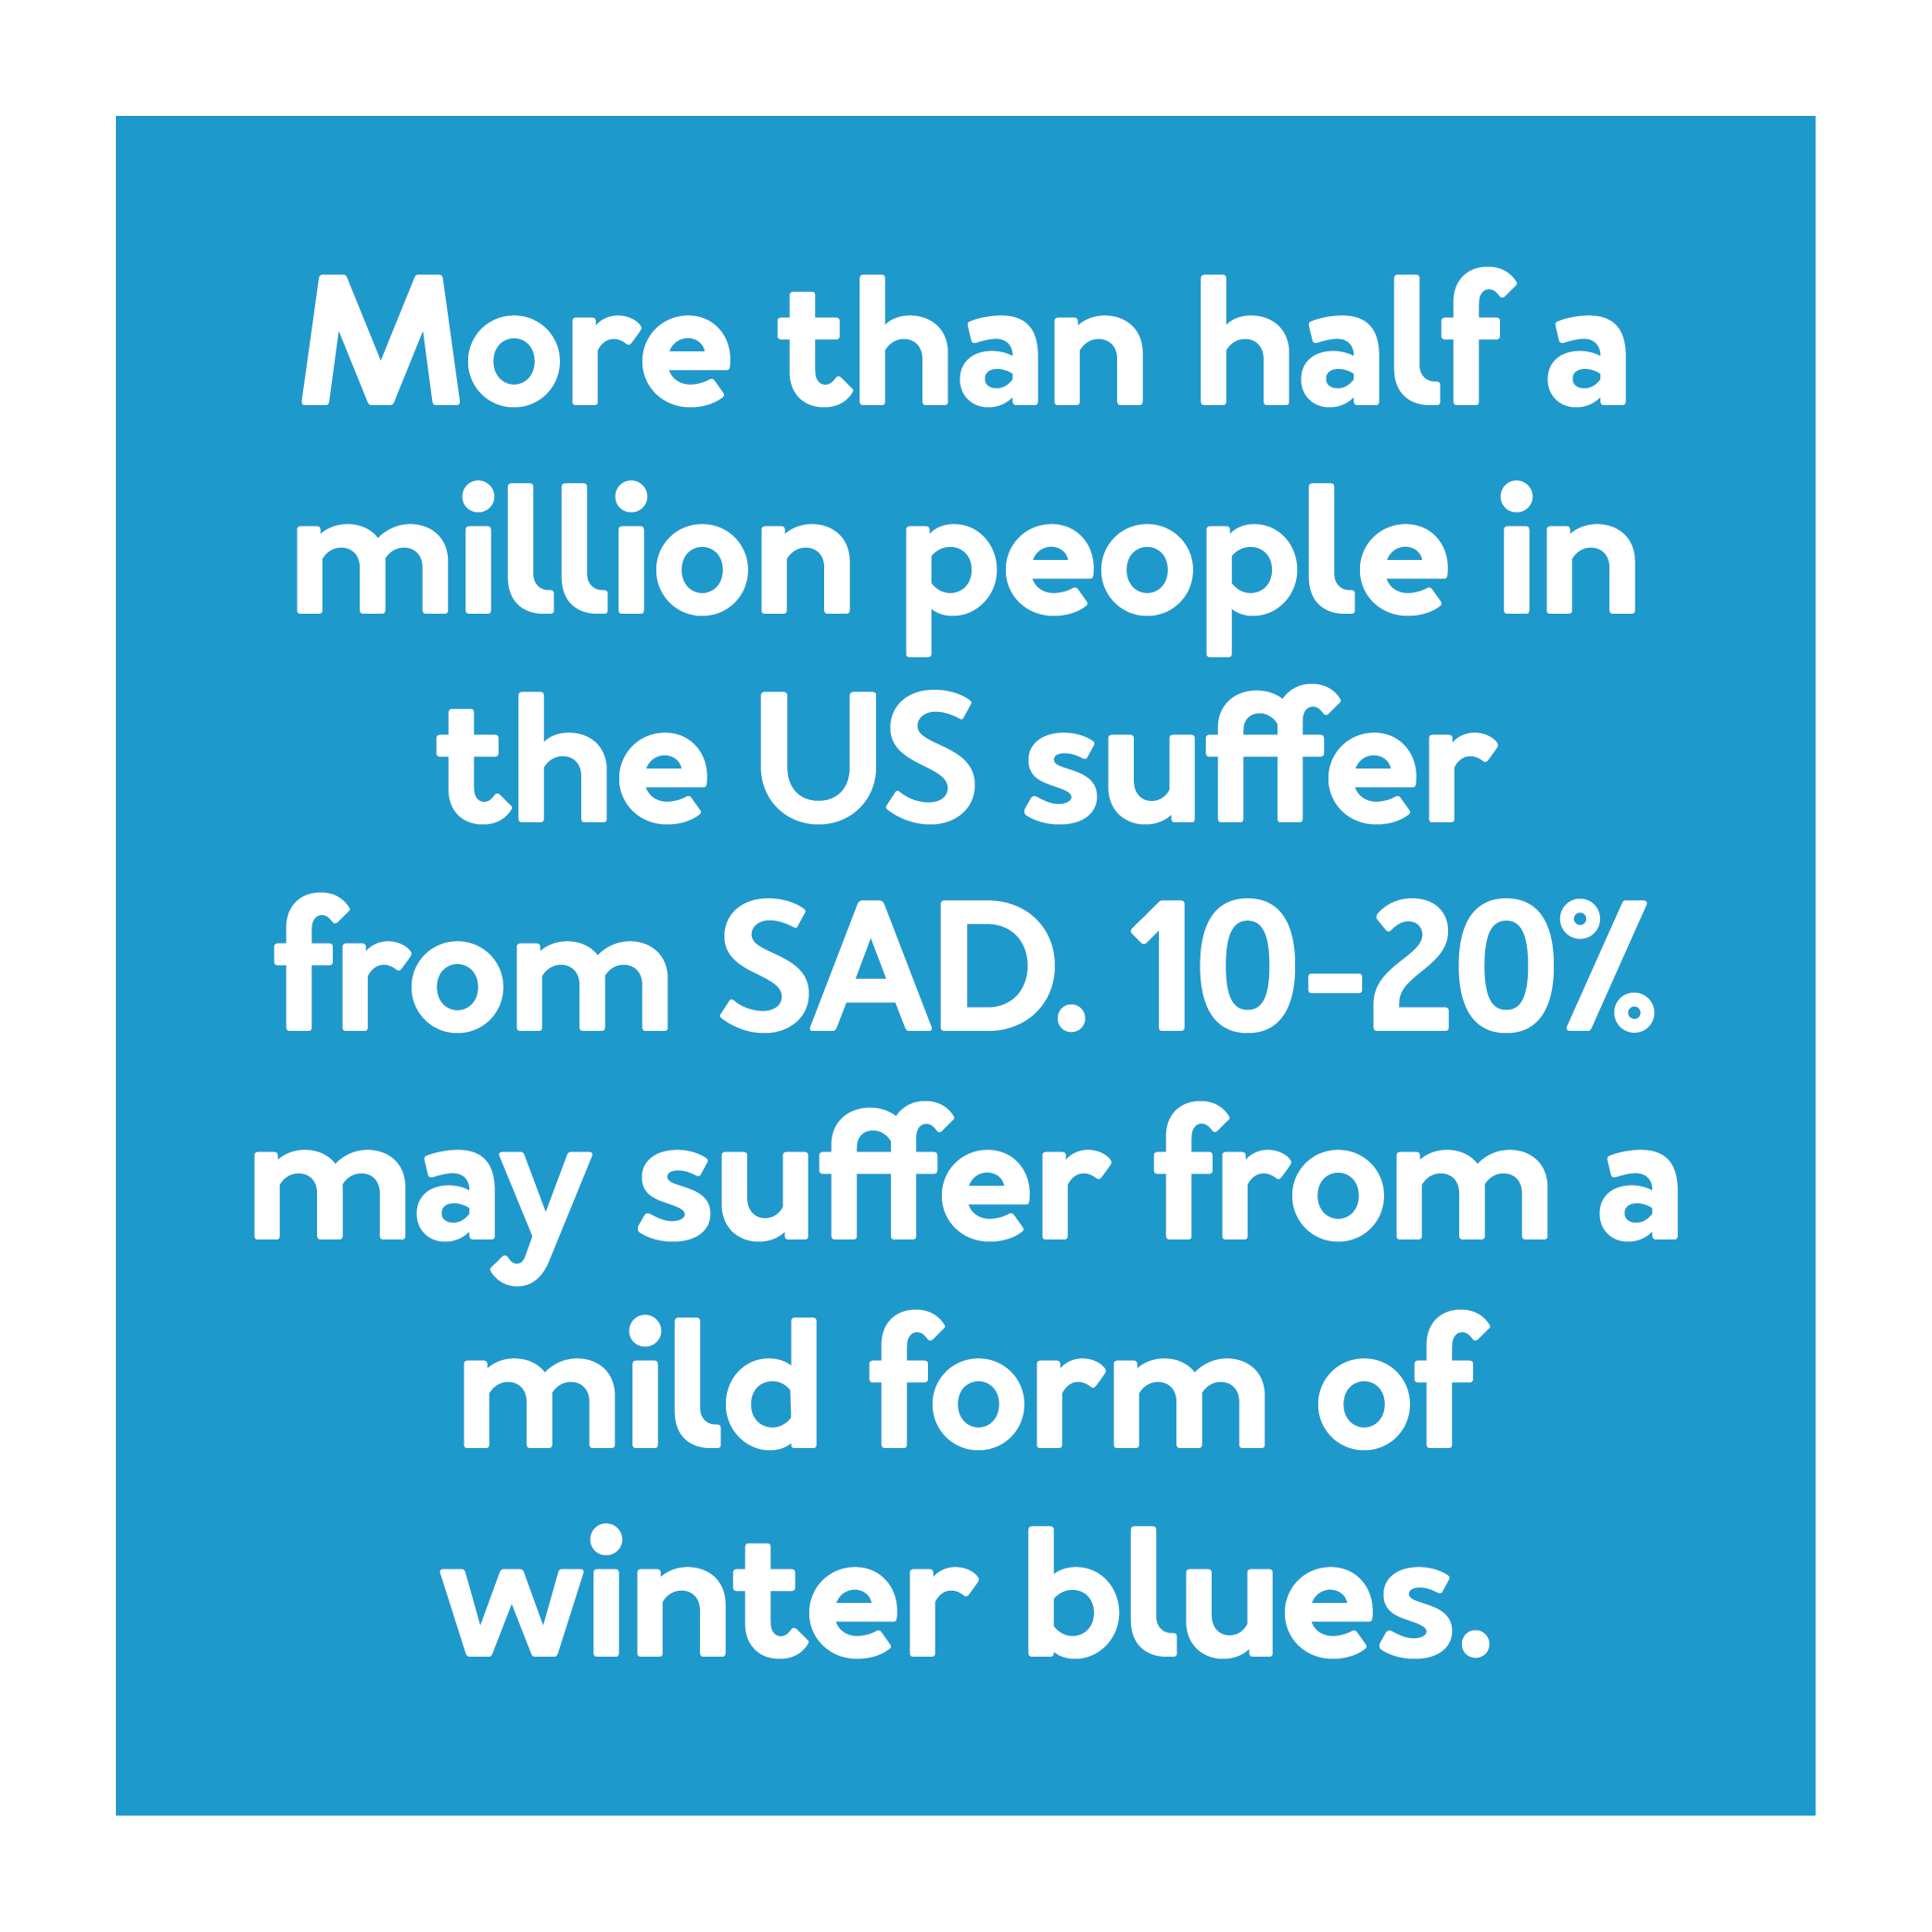 More than half a million people in the U.S. suffer from SAD. 10-20% may suffer from a mild form of winter blues